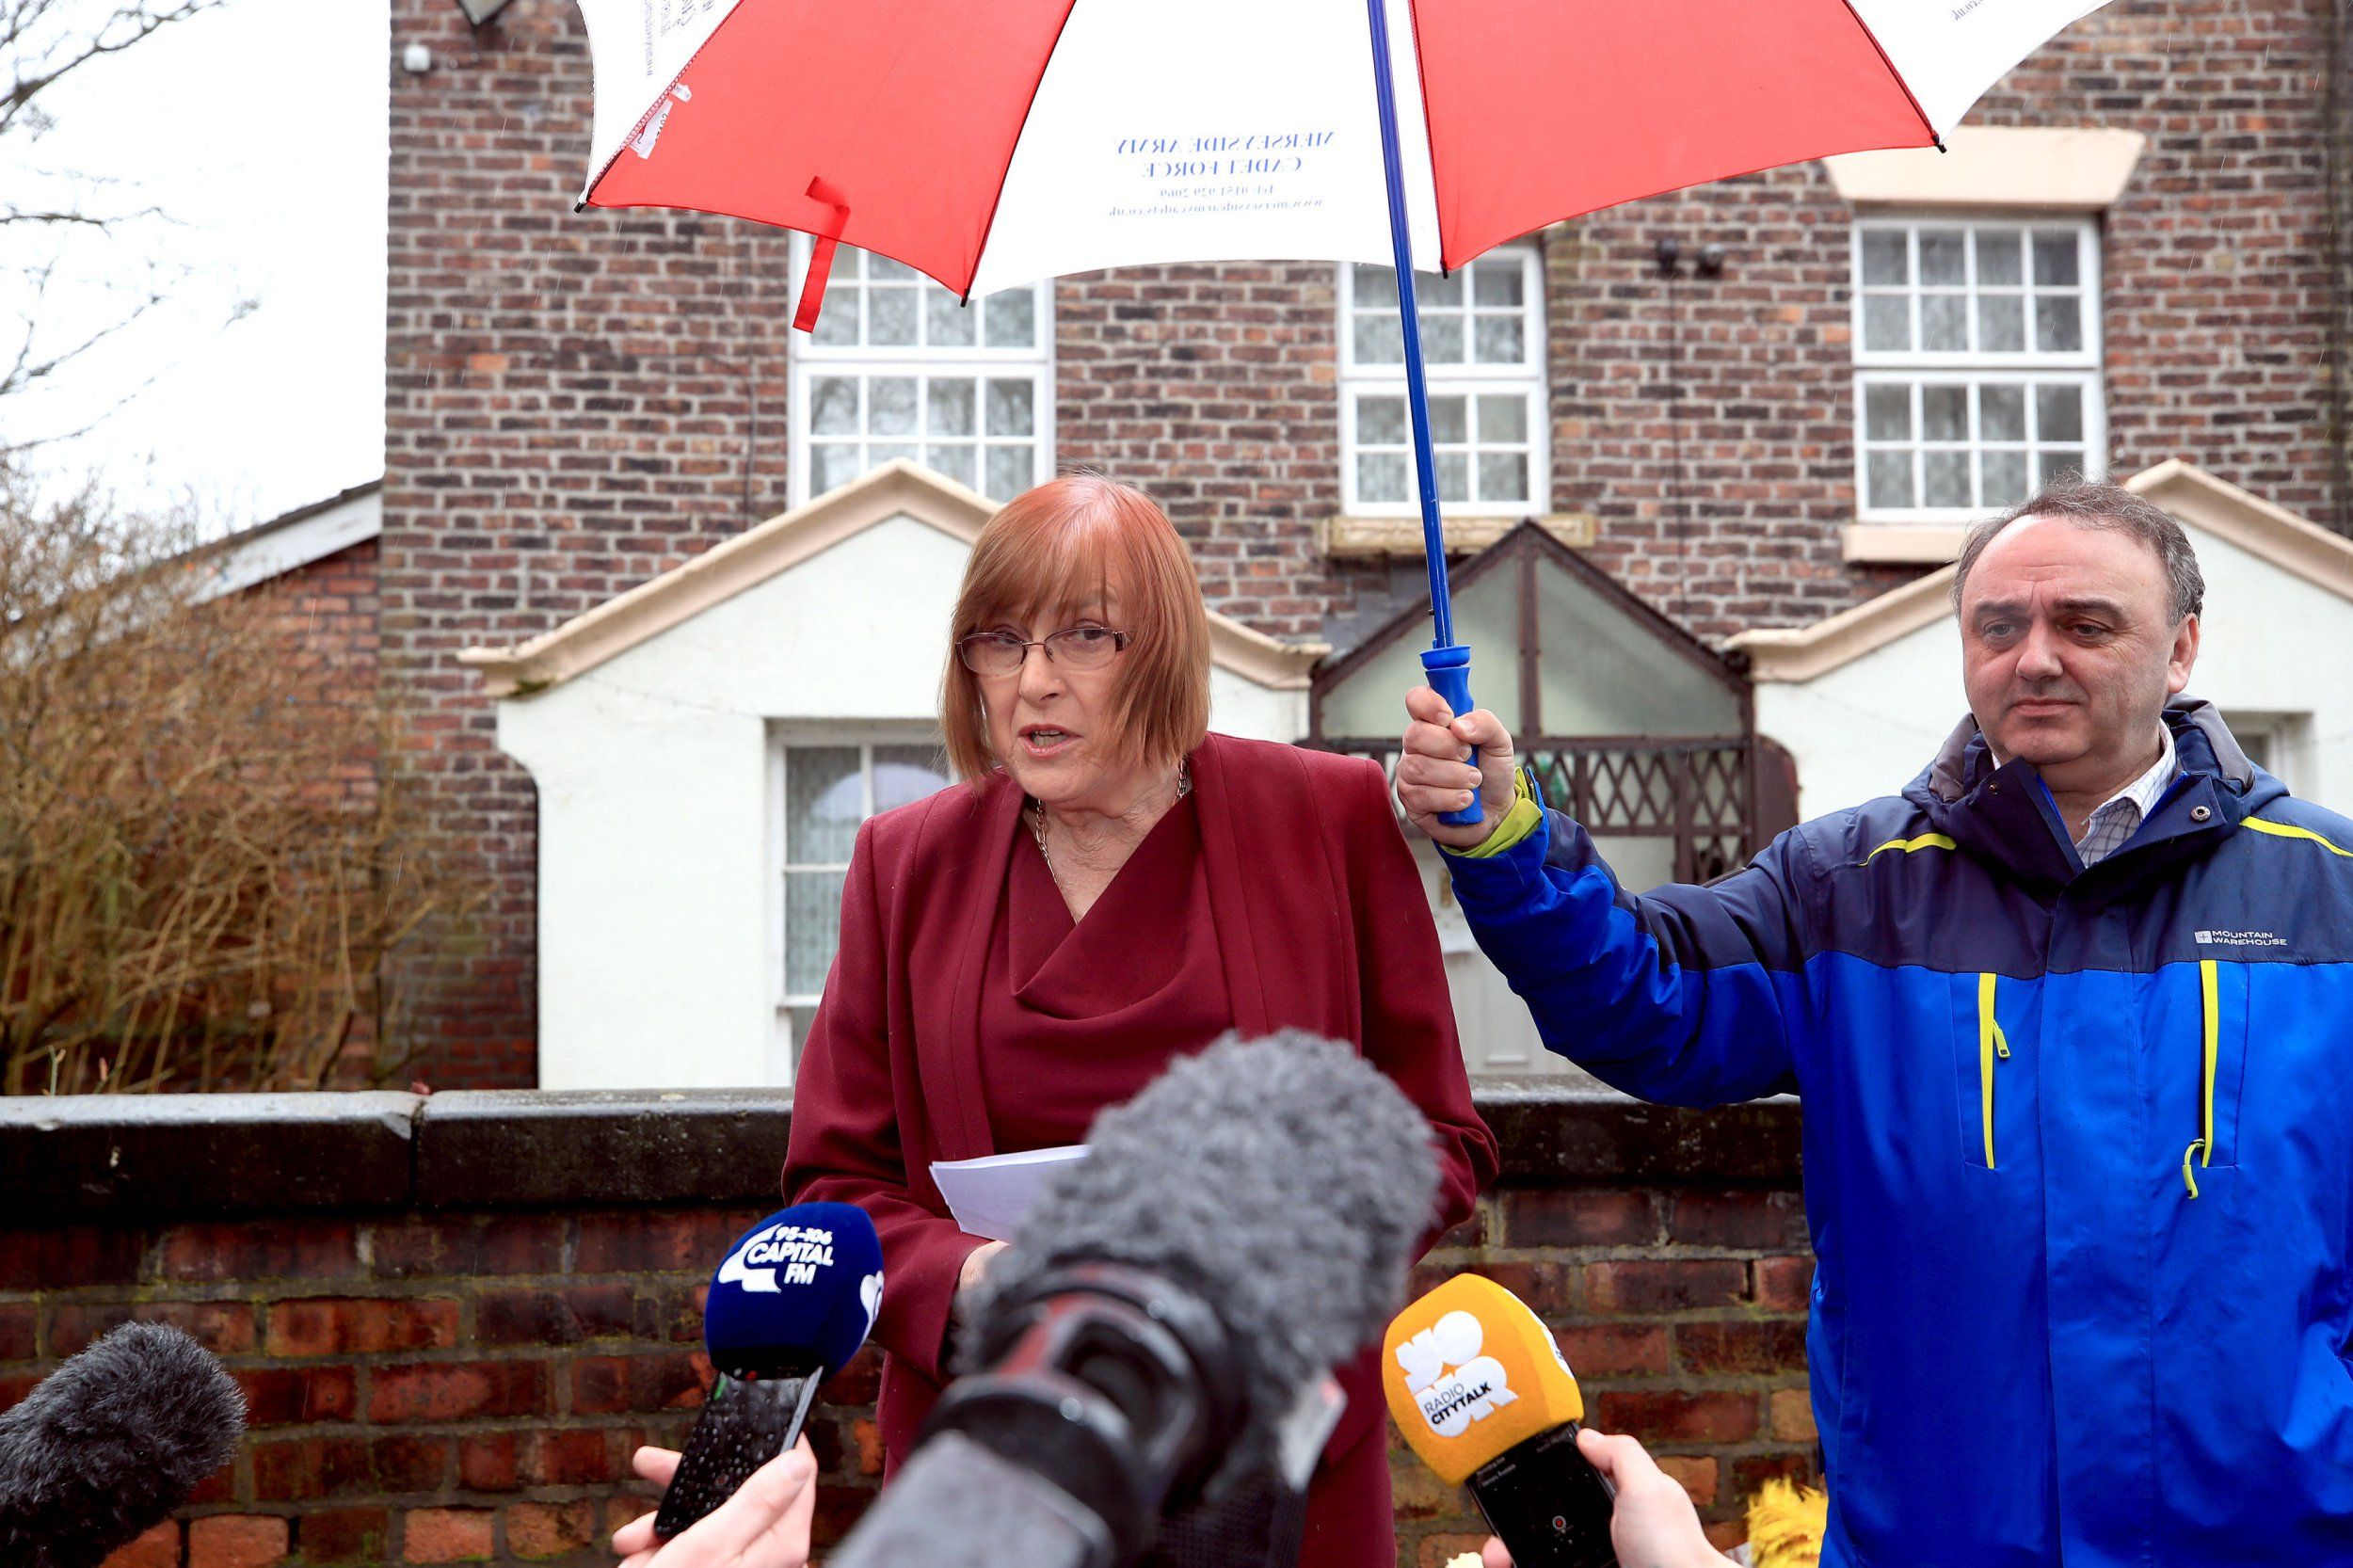 Lady Anne gives a statement outside her Liverpool home following the death of her husband Sir Ken Dodd who has died aged 90, as his nephew John Lewis looks on. PRESS ASSOCIATION Photo. Picture date: Monday March 12, 2018. See PA story DEATH Dodd. Photo credit should read: Peter Byrne/PA Wire